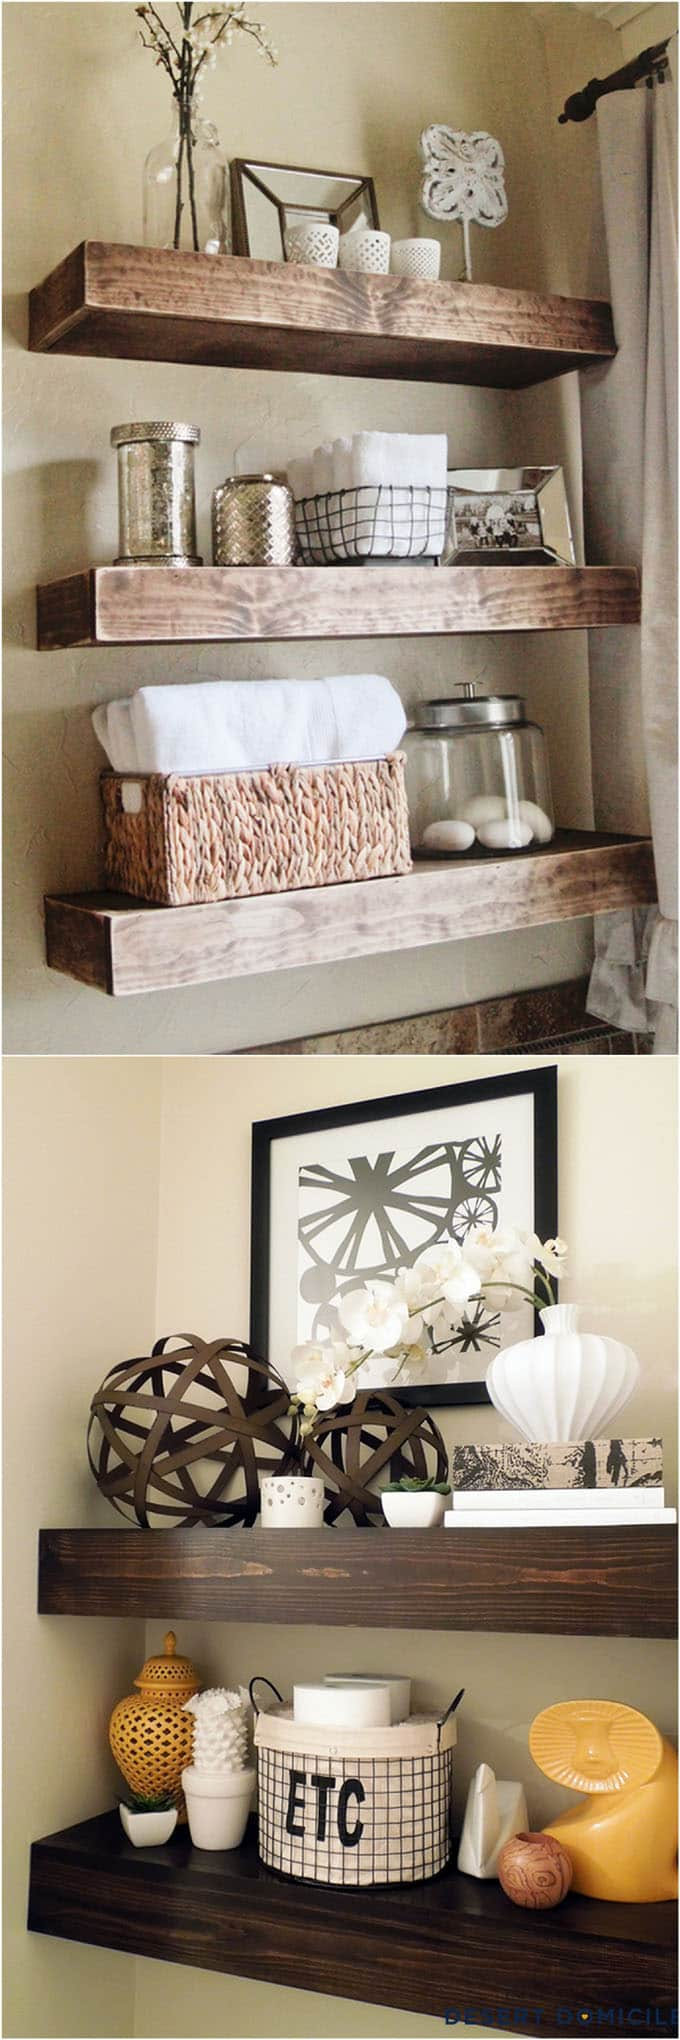 16 Easy Tutorials On Building Beautiful Floating Shelves And Wall Shelves  For Your Home! Check